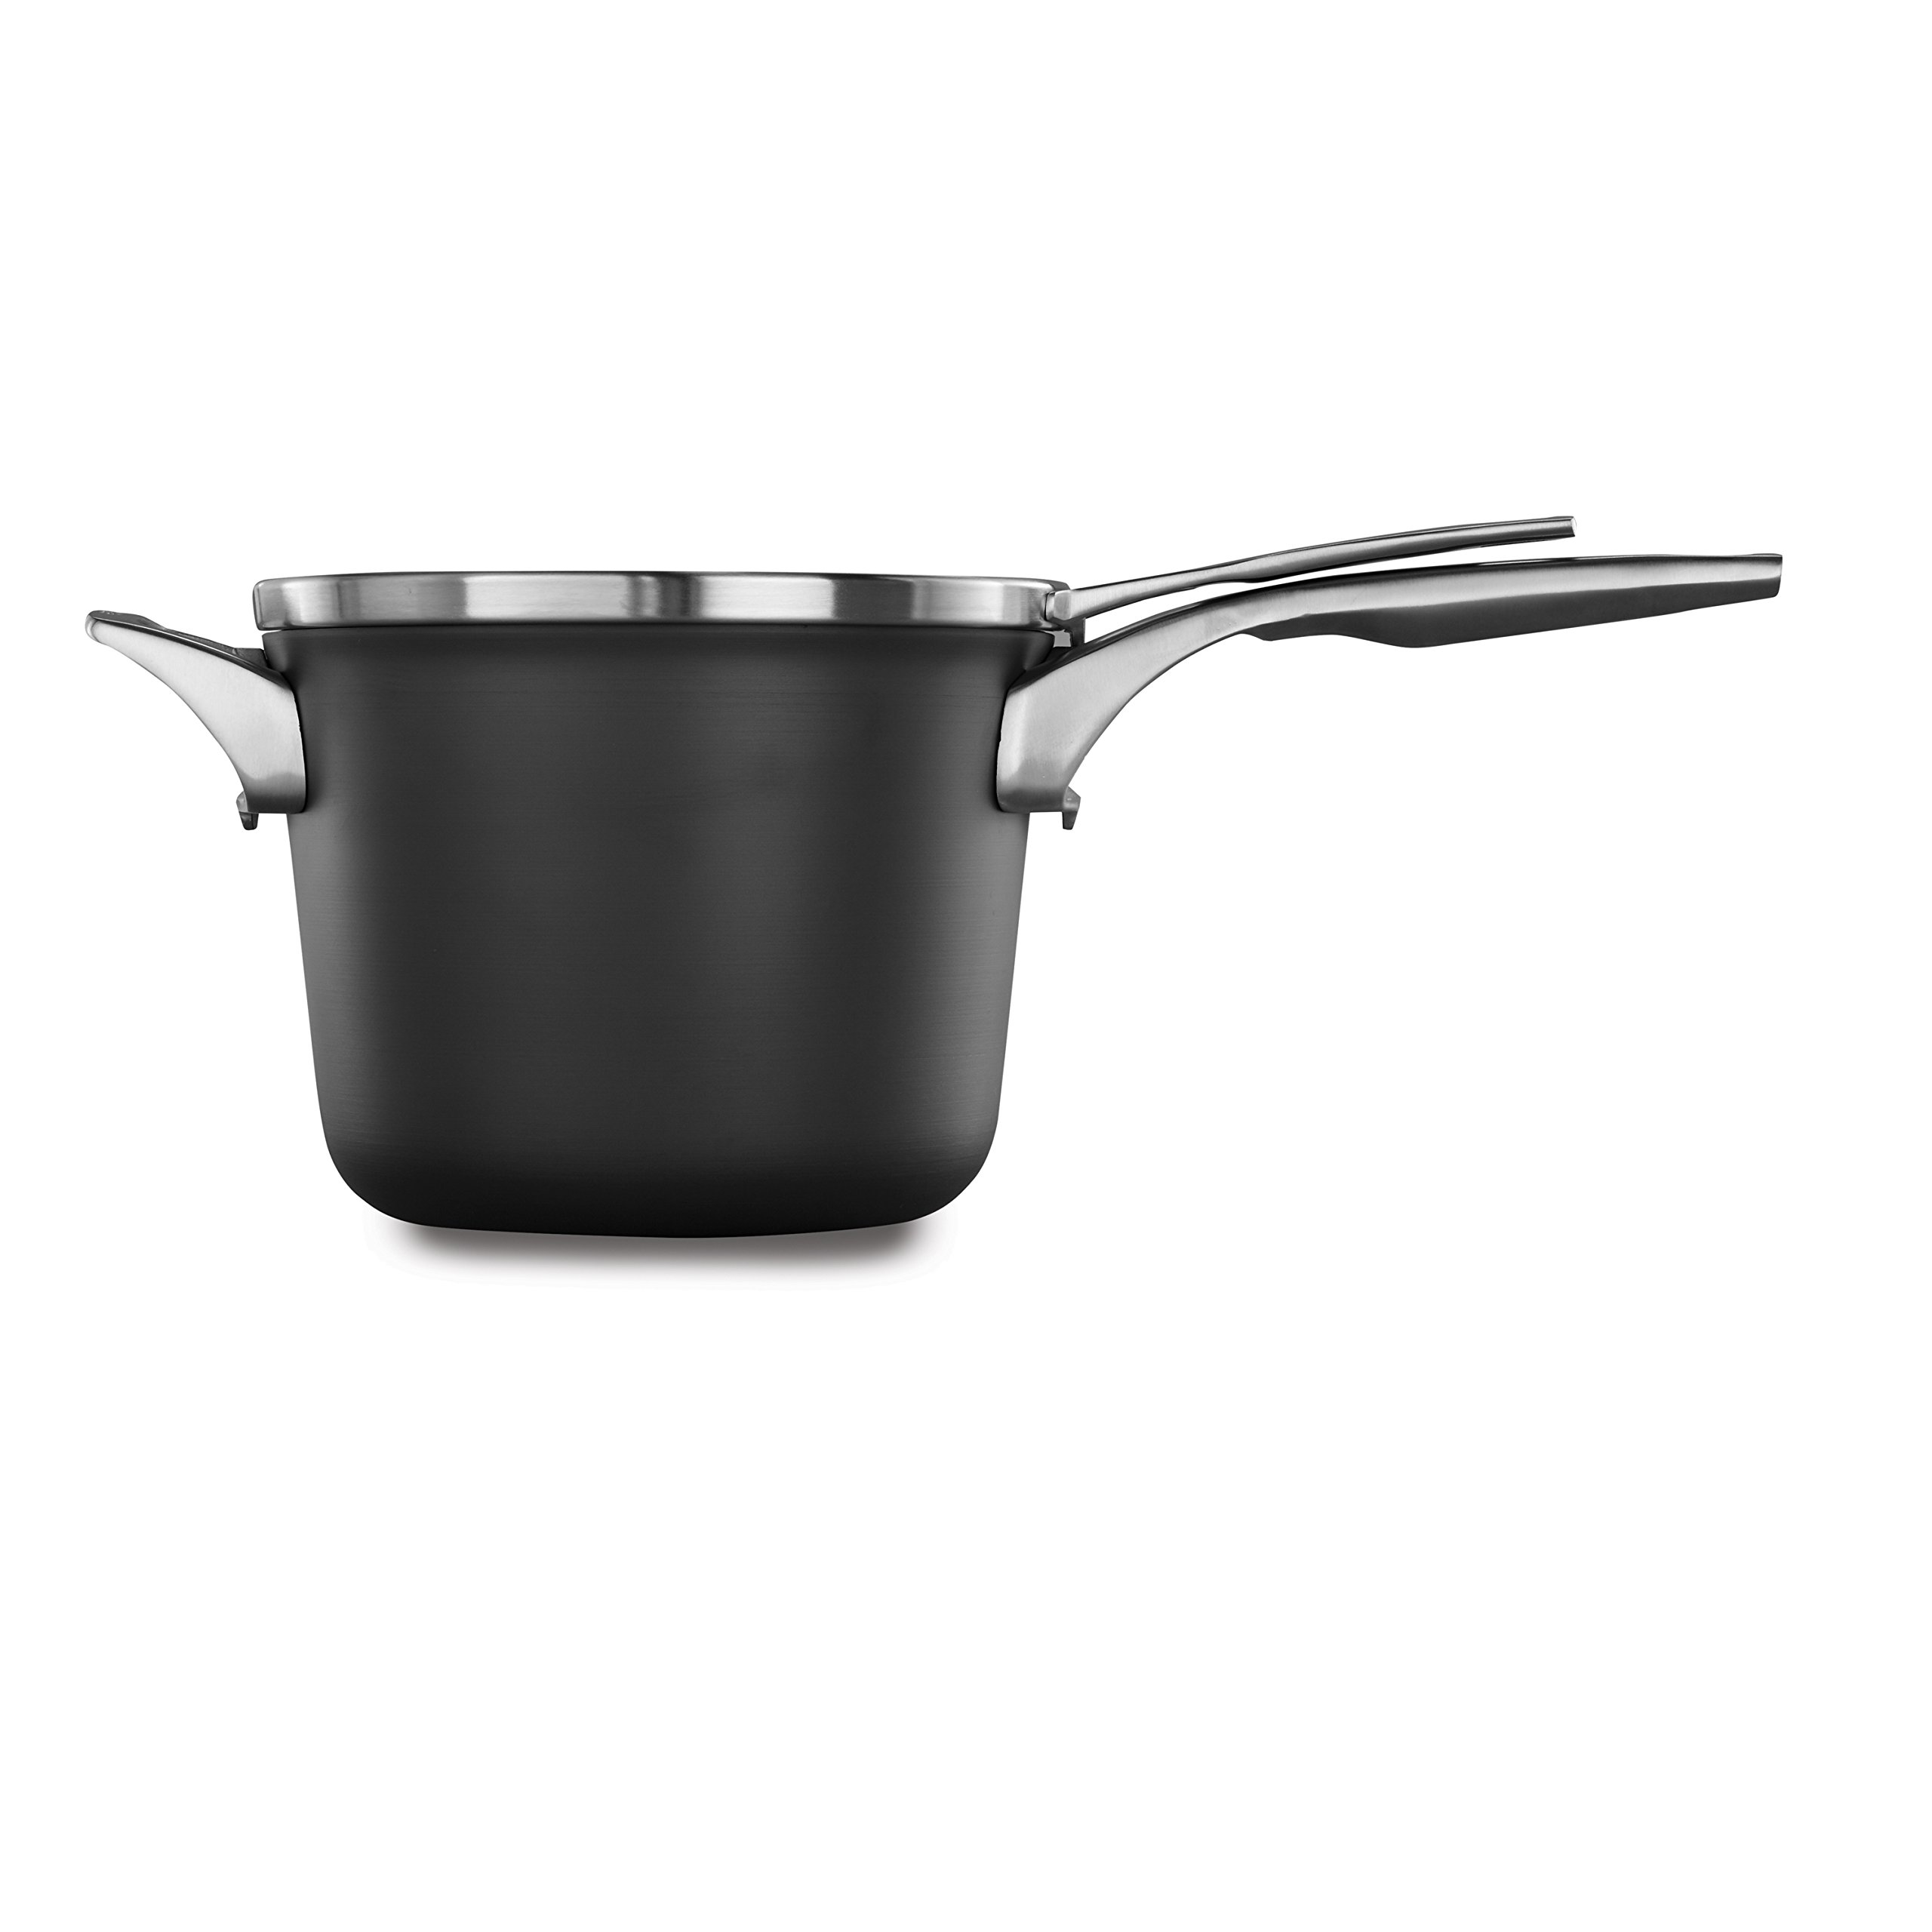 Calphalon Premier Space Saving Nonstick 4.5qt Sauce Pan with Cover